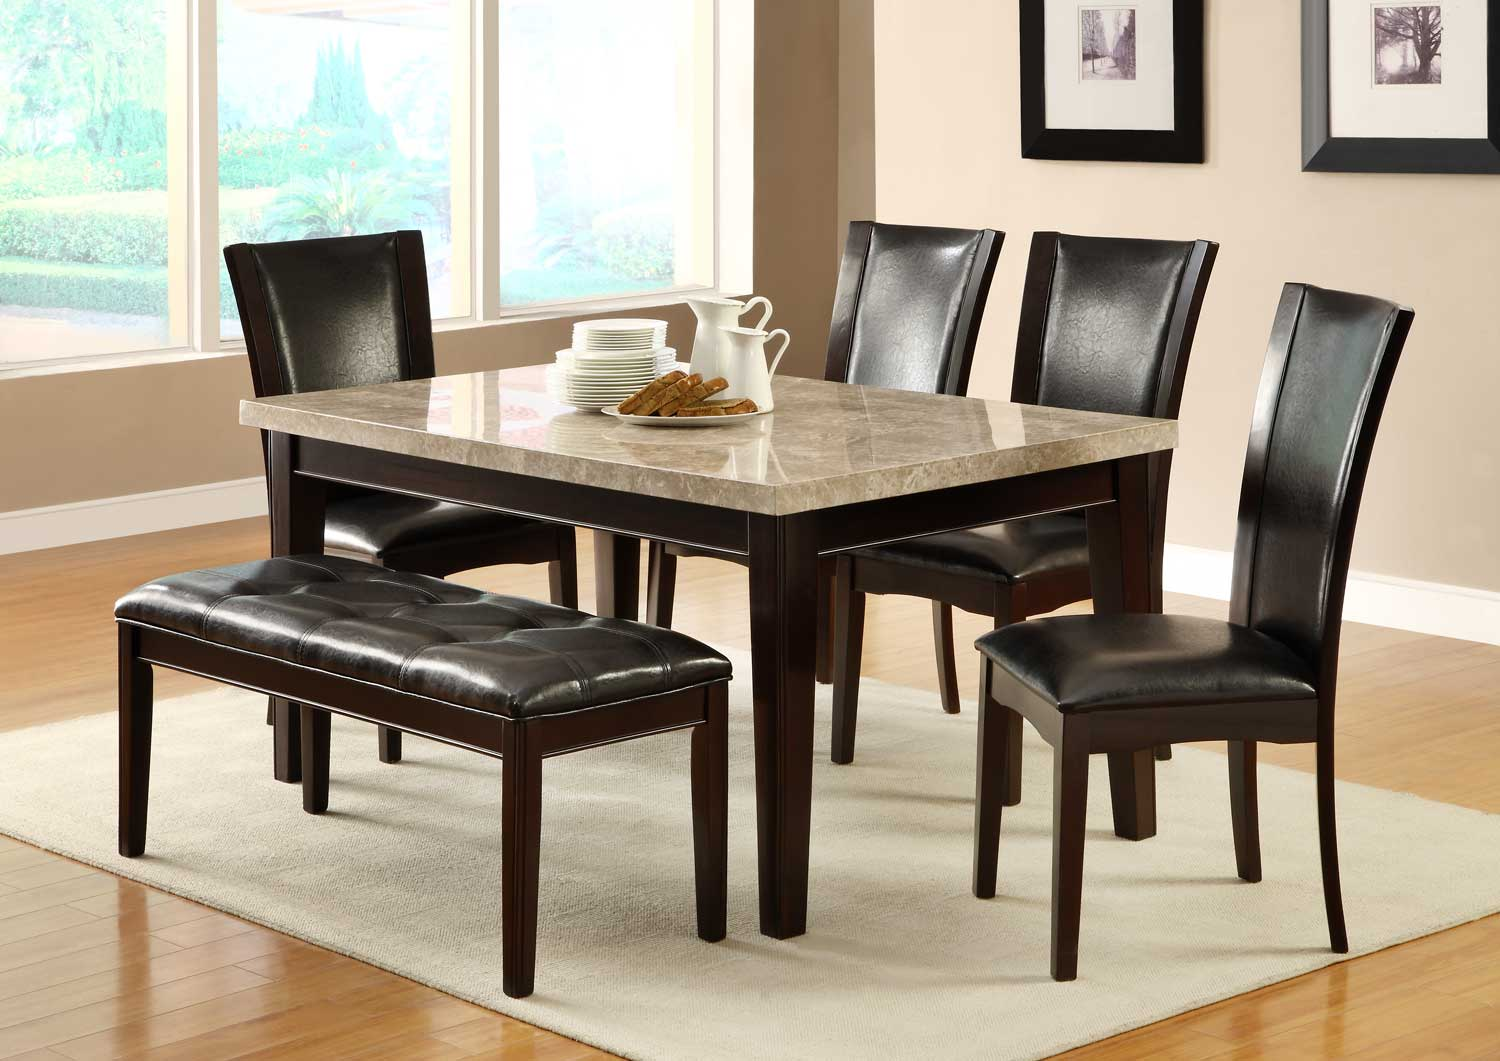 Homelegance Hahn Dining Set - Ivory Marble Top/Dark Brown